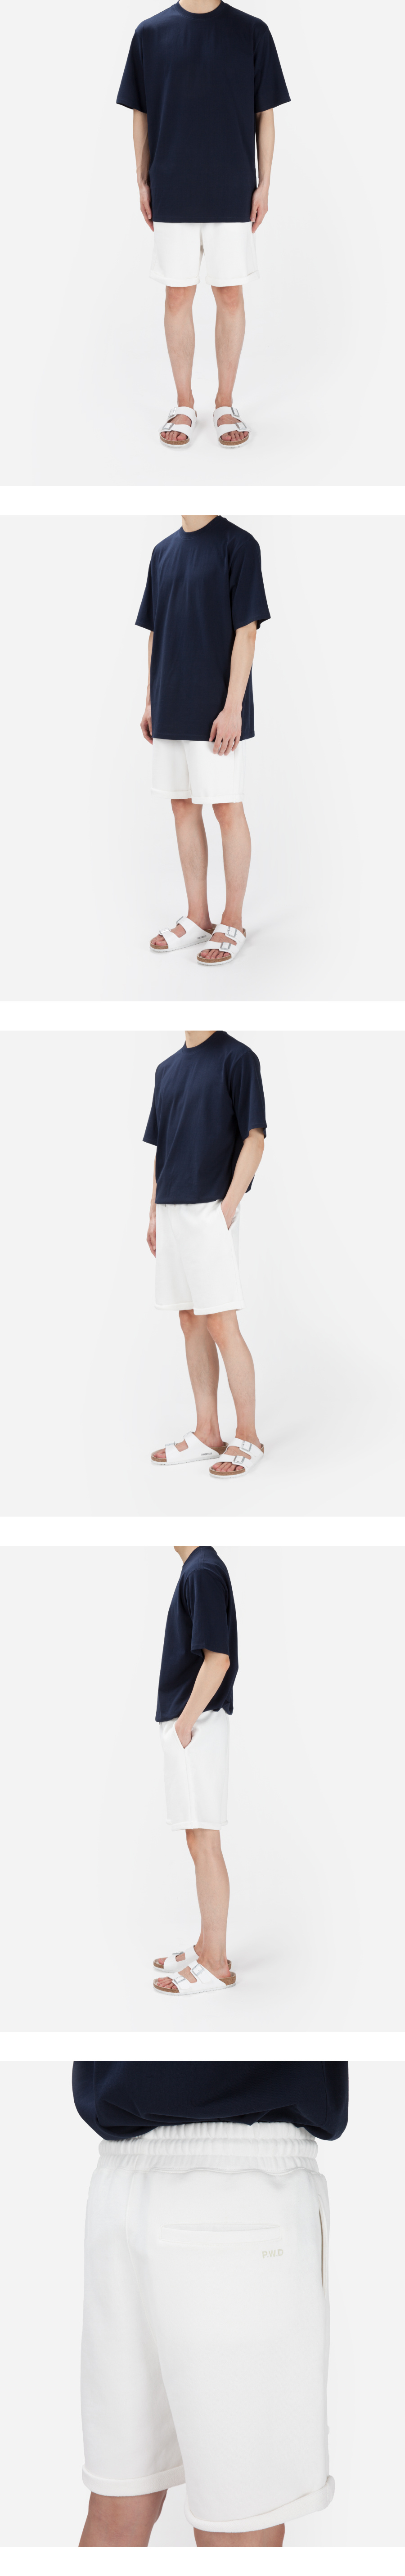 피스워커(PIECE WORKER) Sweet Shorts - Ivory / Shorts